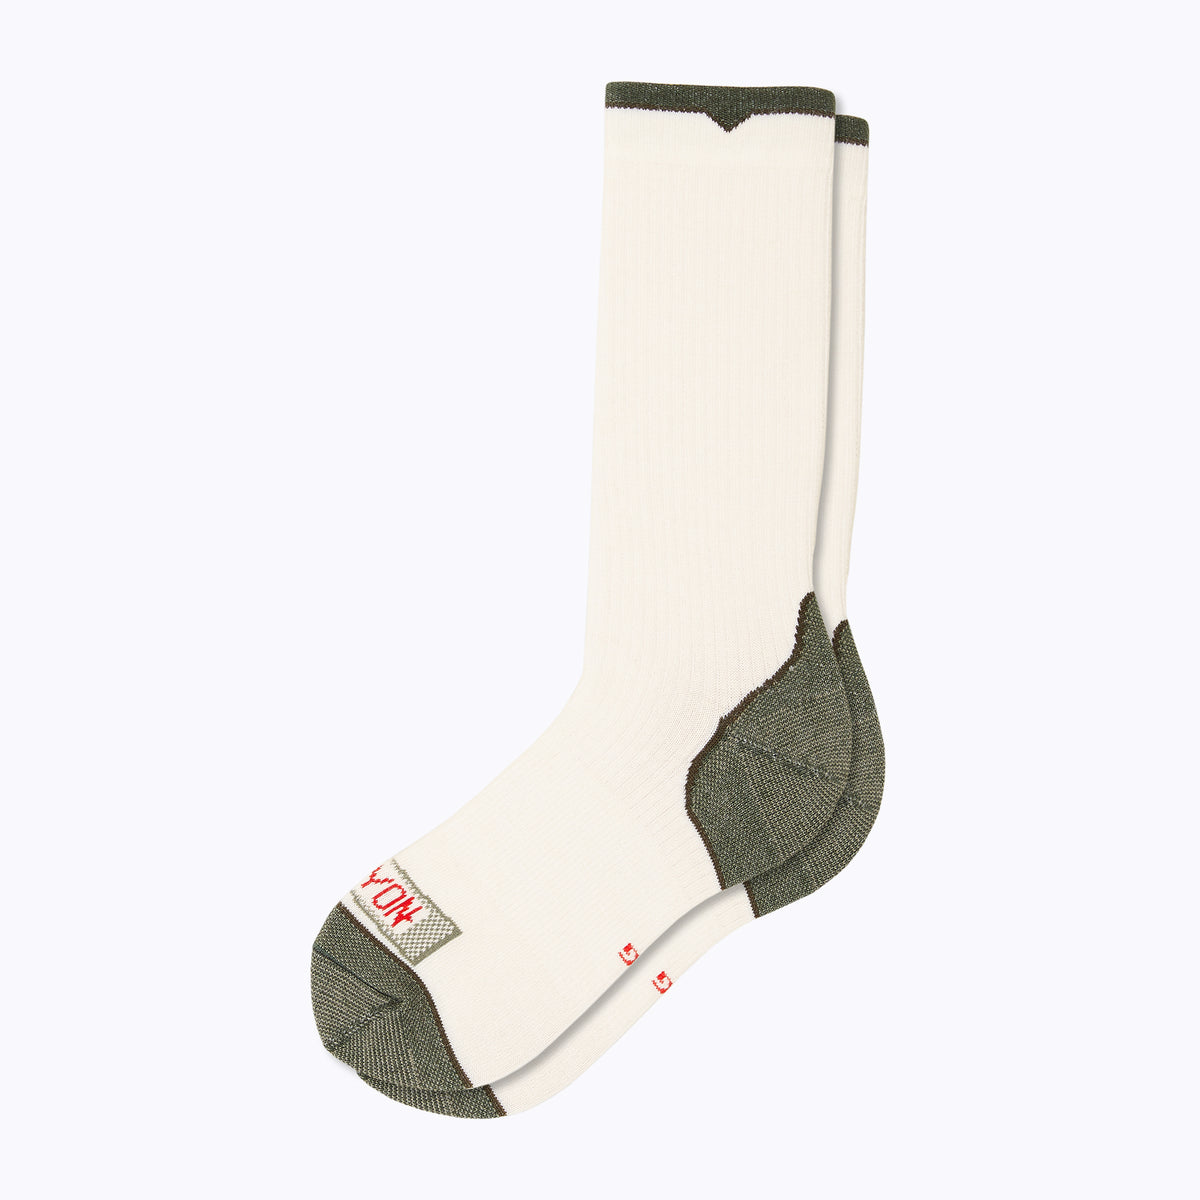 Essential Men's Crew Socks - White by Canyon Socks